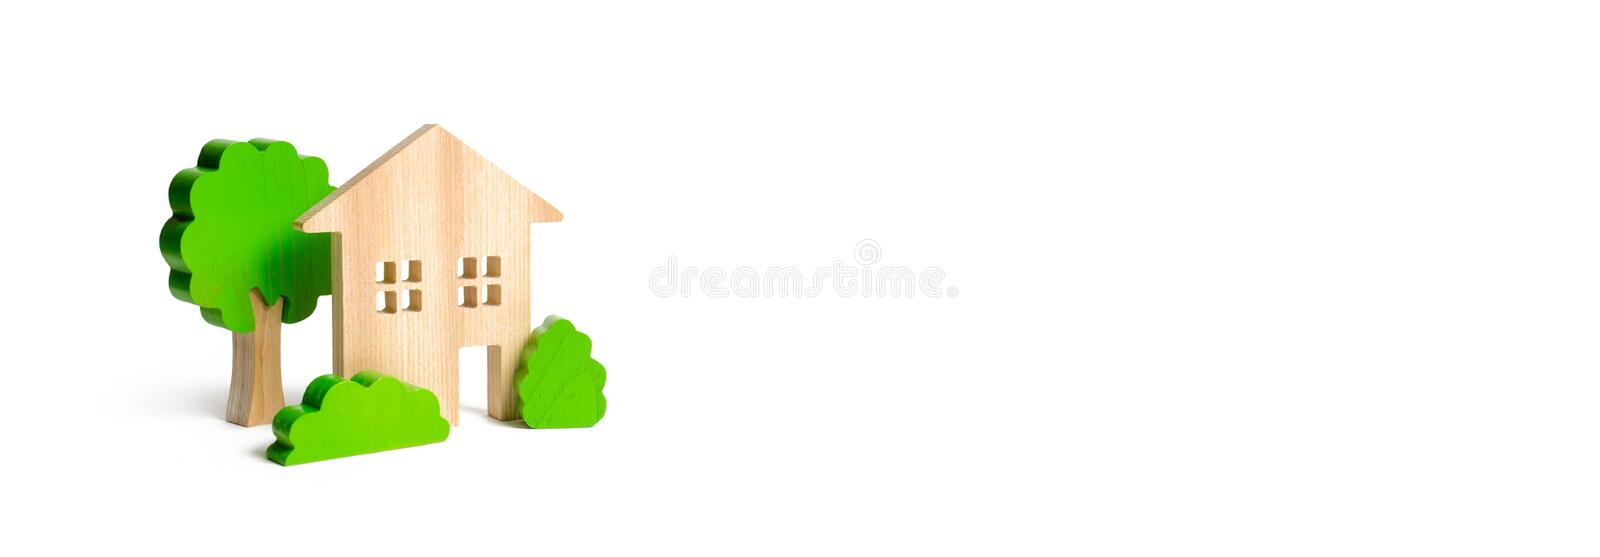 Large two-story house surrounded by bushes and trees on an isolated background. Accommodation for families. Urbanism and urban royalty free stock image